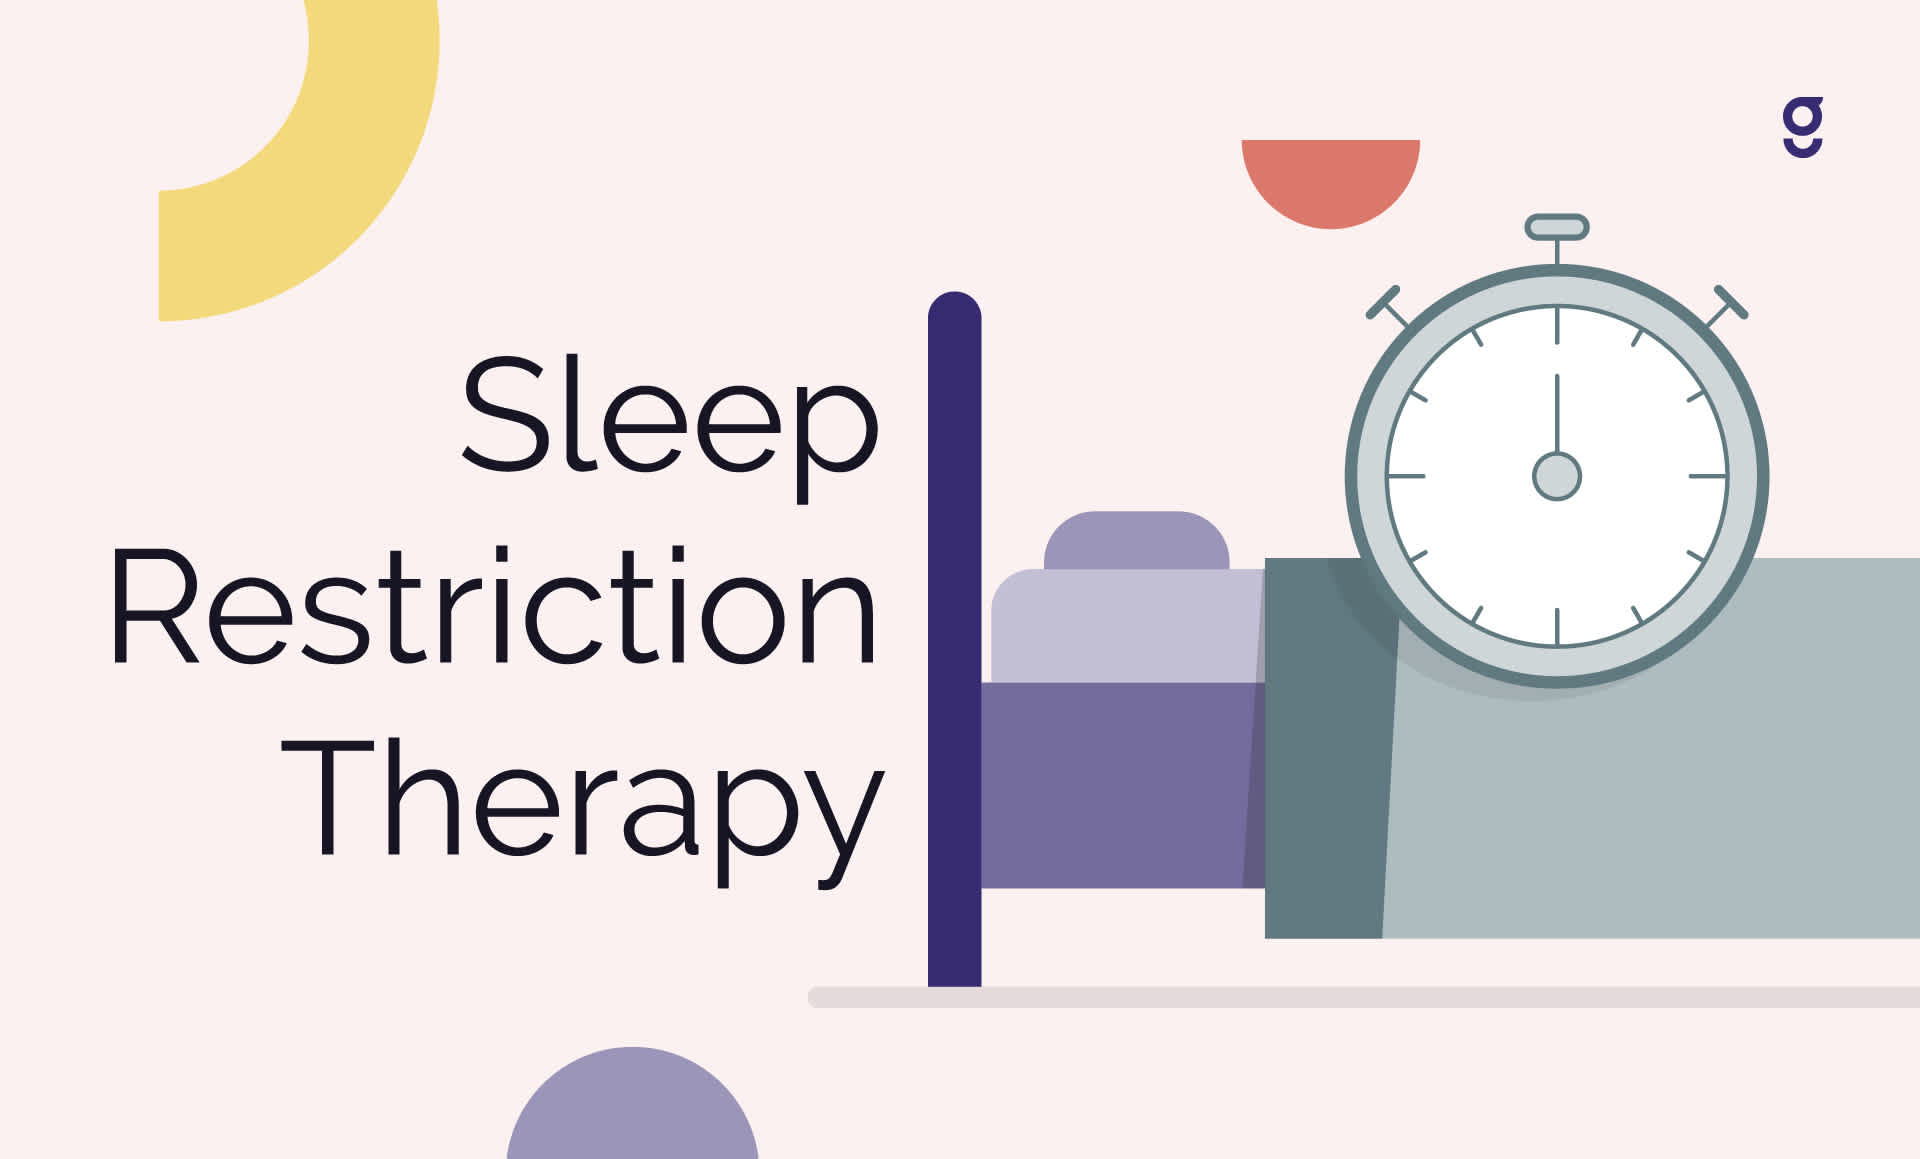 How Does Sleep Restriction Therapy (SRT) Work?